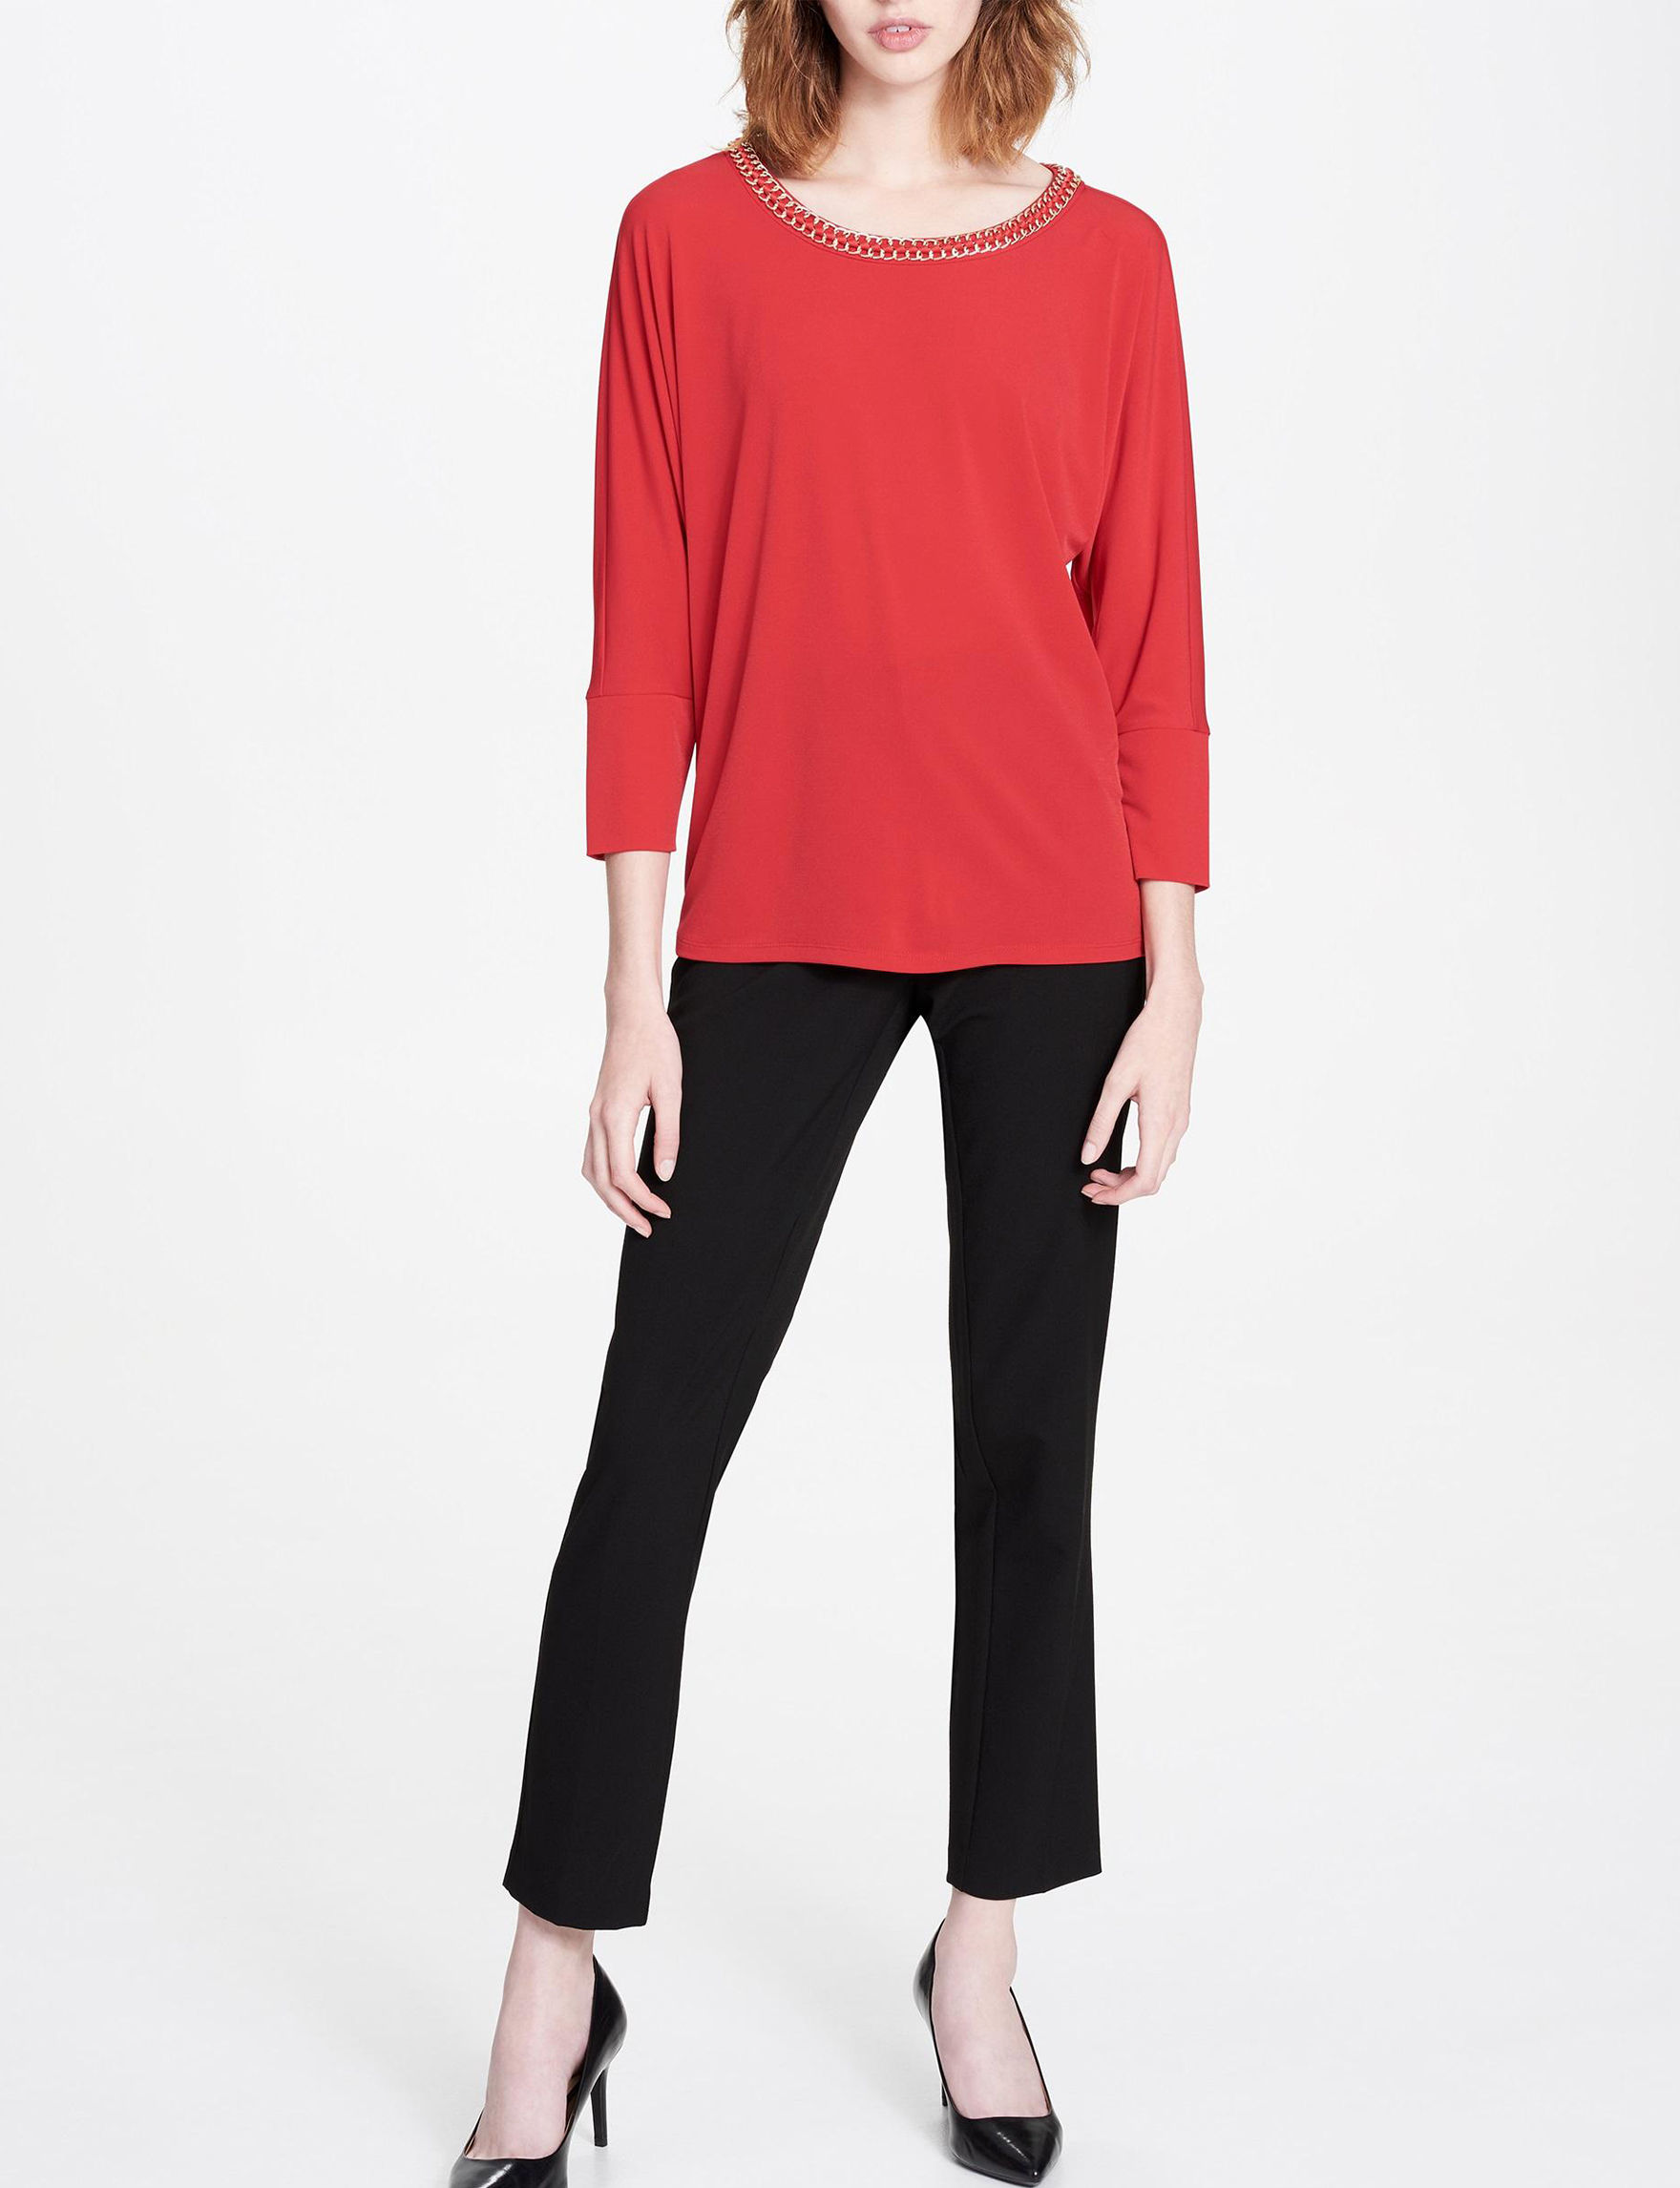 Calvin Klein Rouge Shirts & Blouses